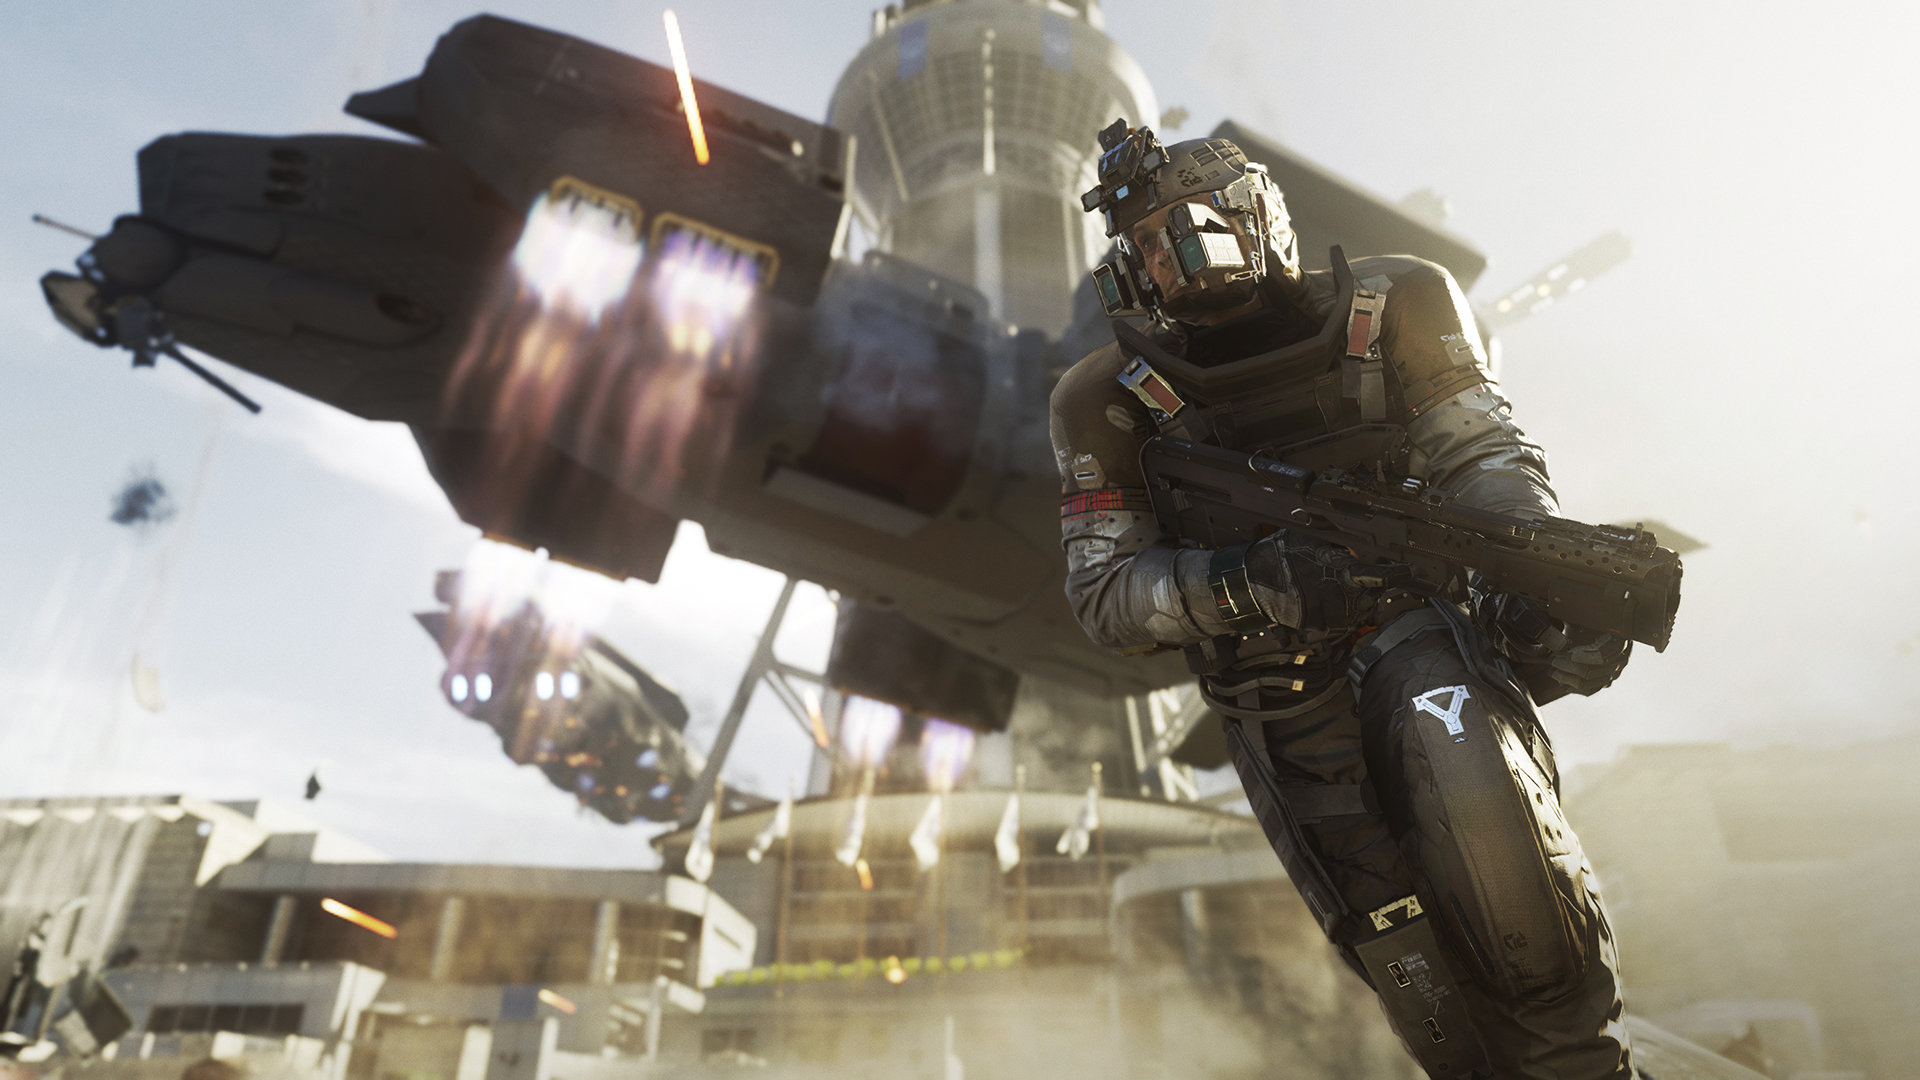 Call Of Duty: Infinite Warfare Devs Want To Start New Sub Series call duty infinite warfare